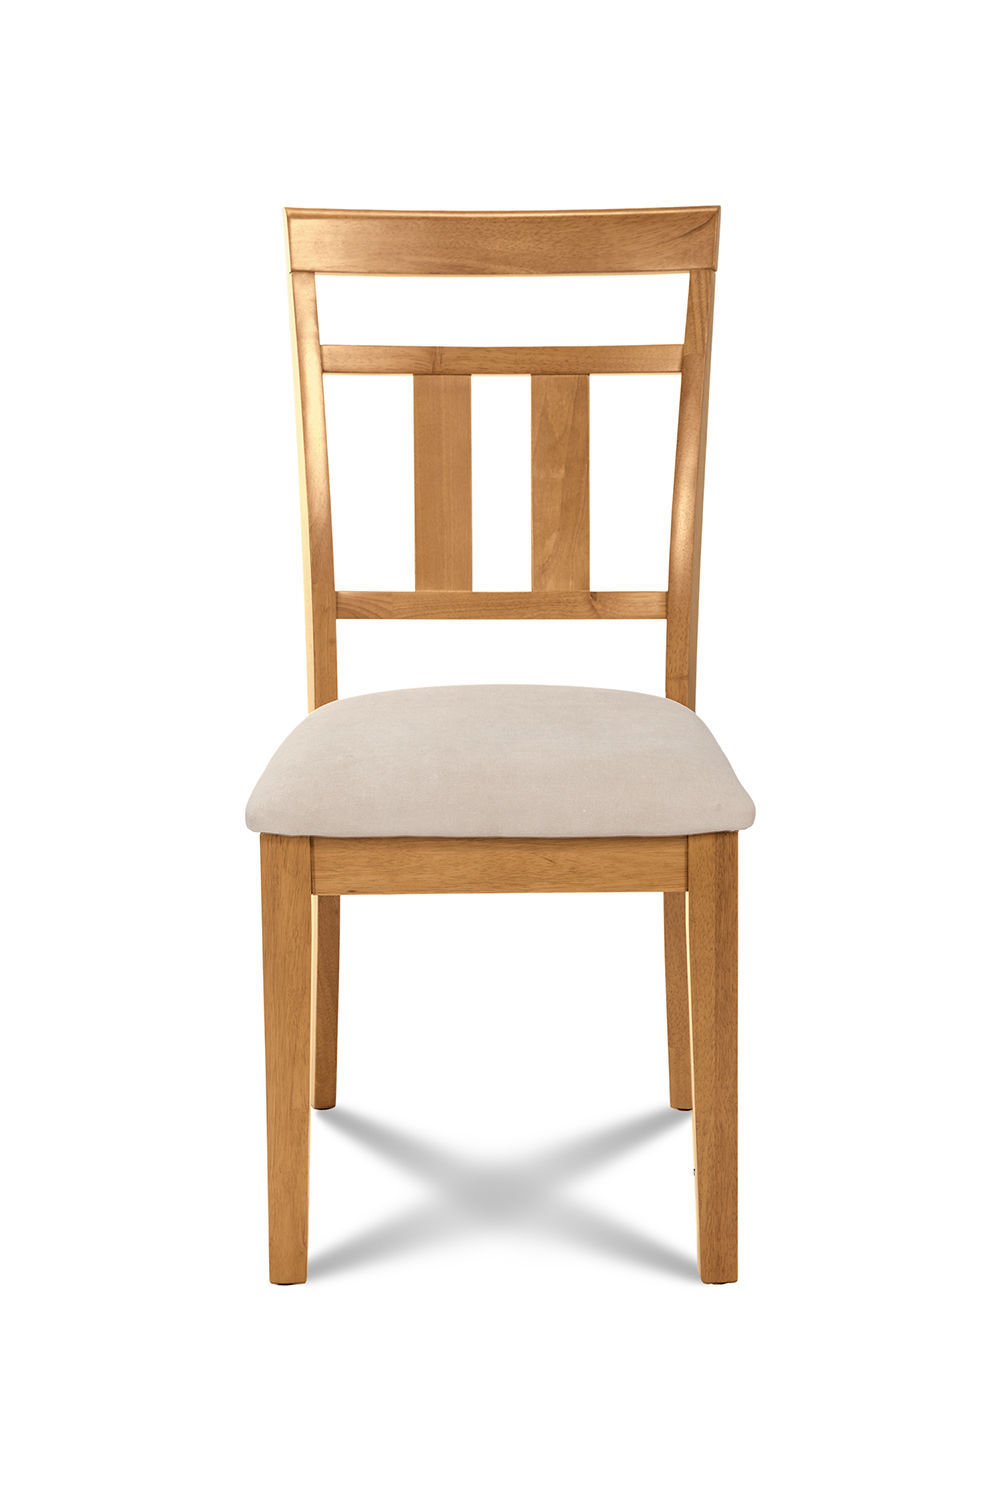 SET OF 6 KITCHEN DINING SIDE CHAIRS w/ SOFT-PADDED SEAT IN  OAK FINISH